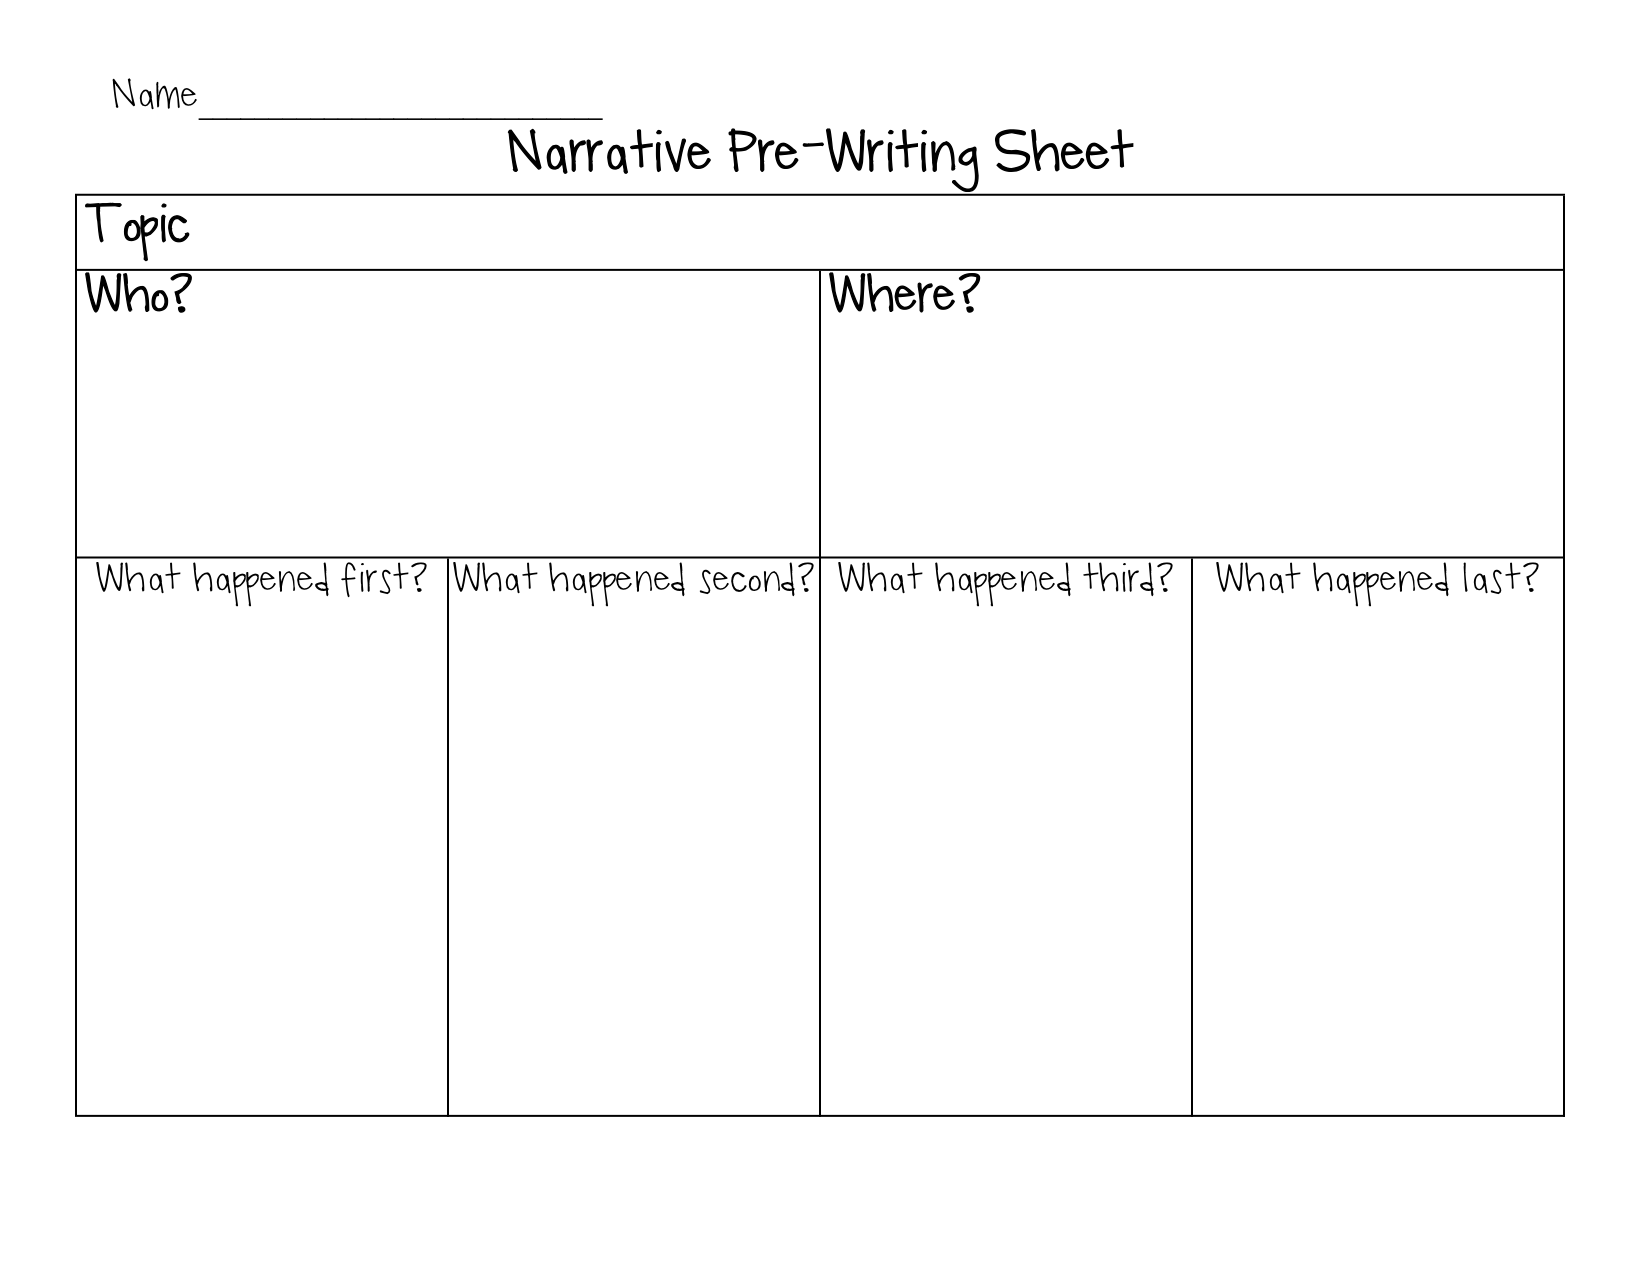 narrative essay prewriting graphic organizer Students will practise sequencing and prewriting skills as they use this fun watermelon-shaped graphic organizer to plan out their personal narrative.